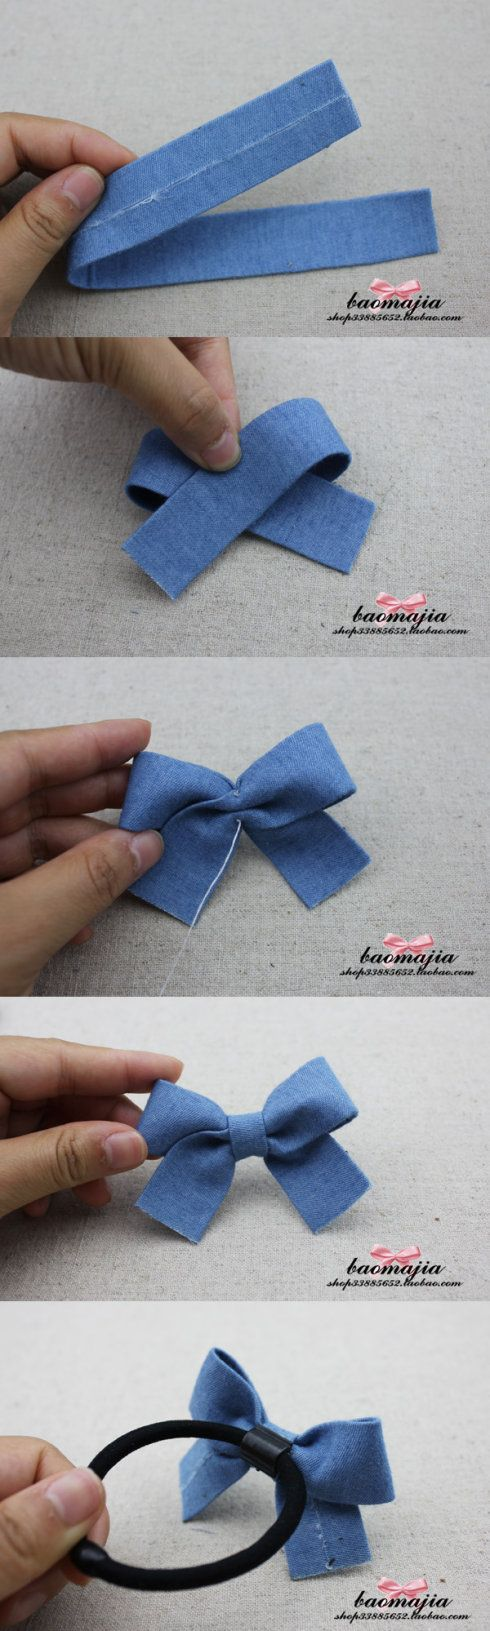 Di diy baby hair accessories holder - Find This Pin And More On When I Get The Time Diy Hair Bow Ponytail Holder